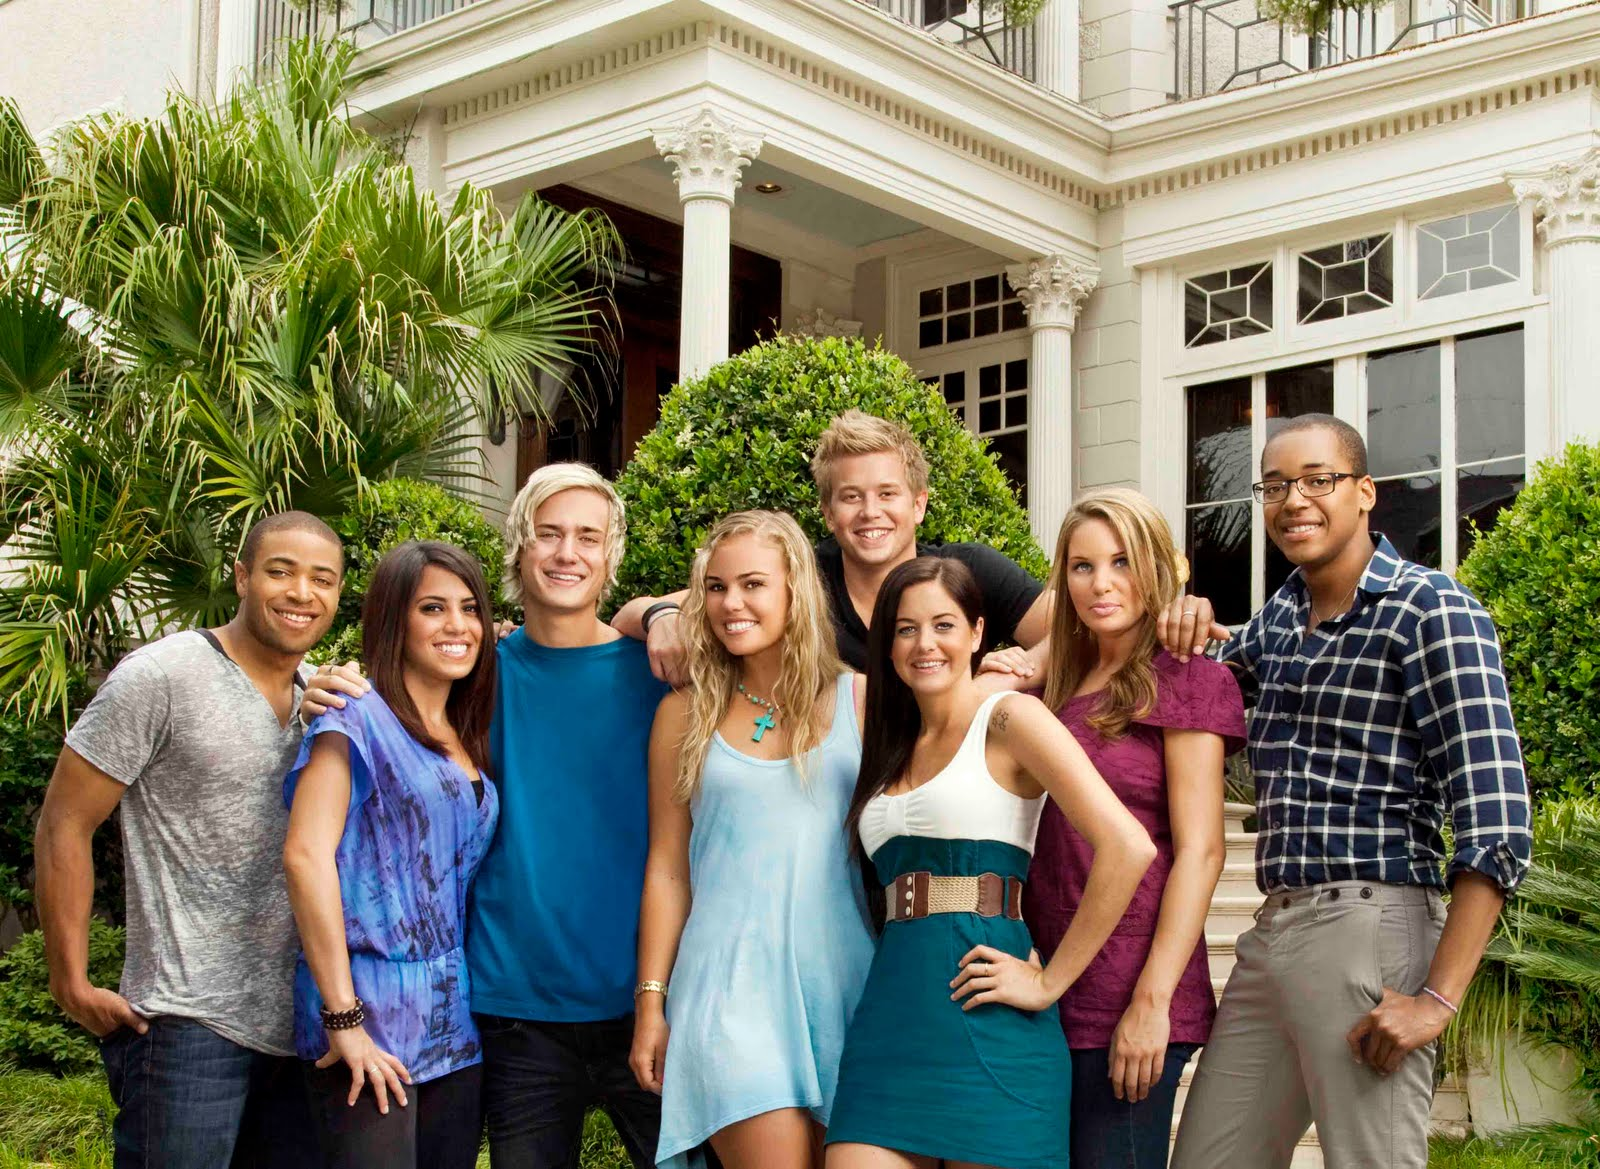 New Episodes Of Real World New Orleans